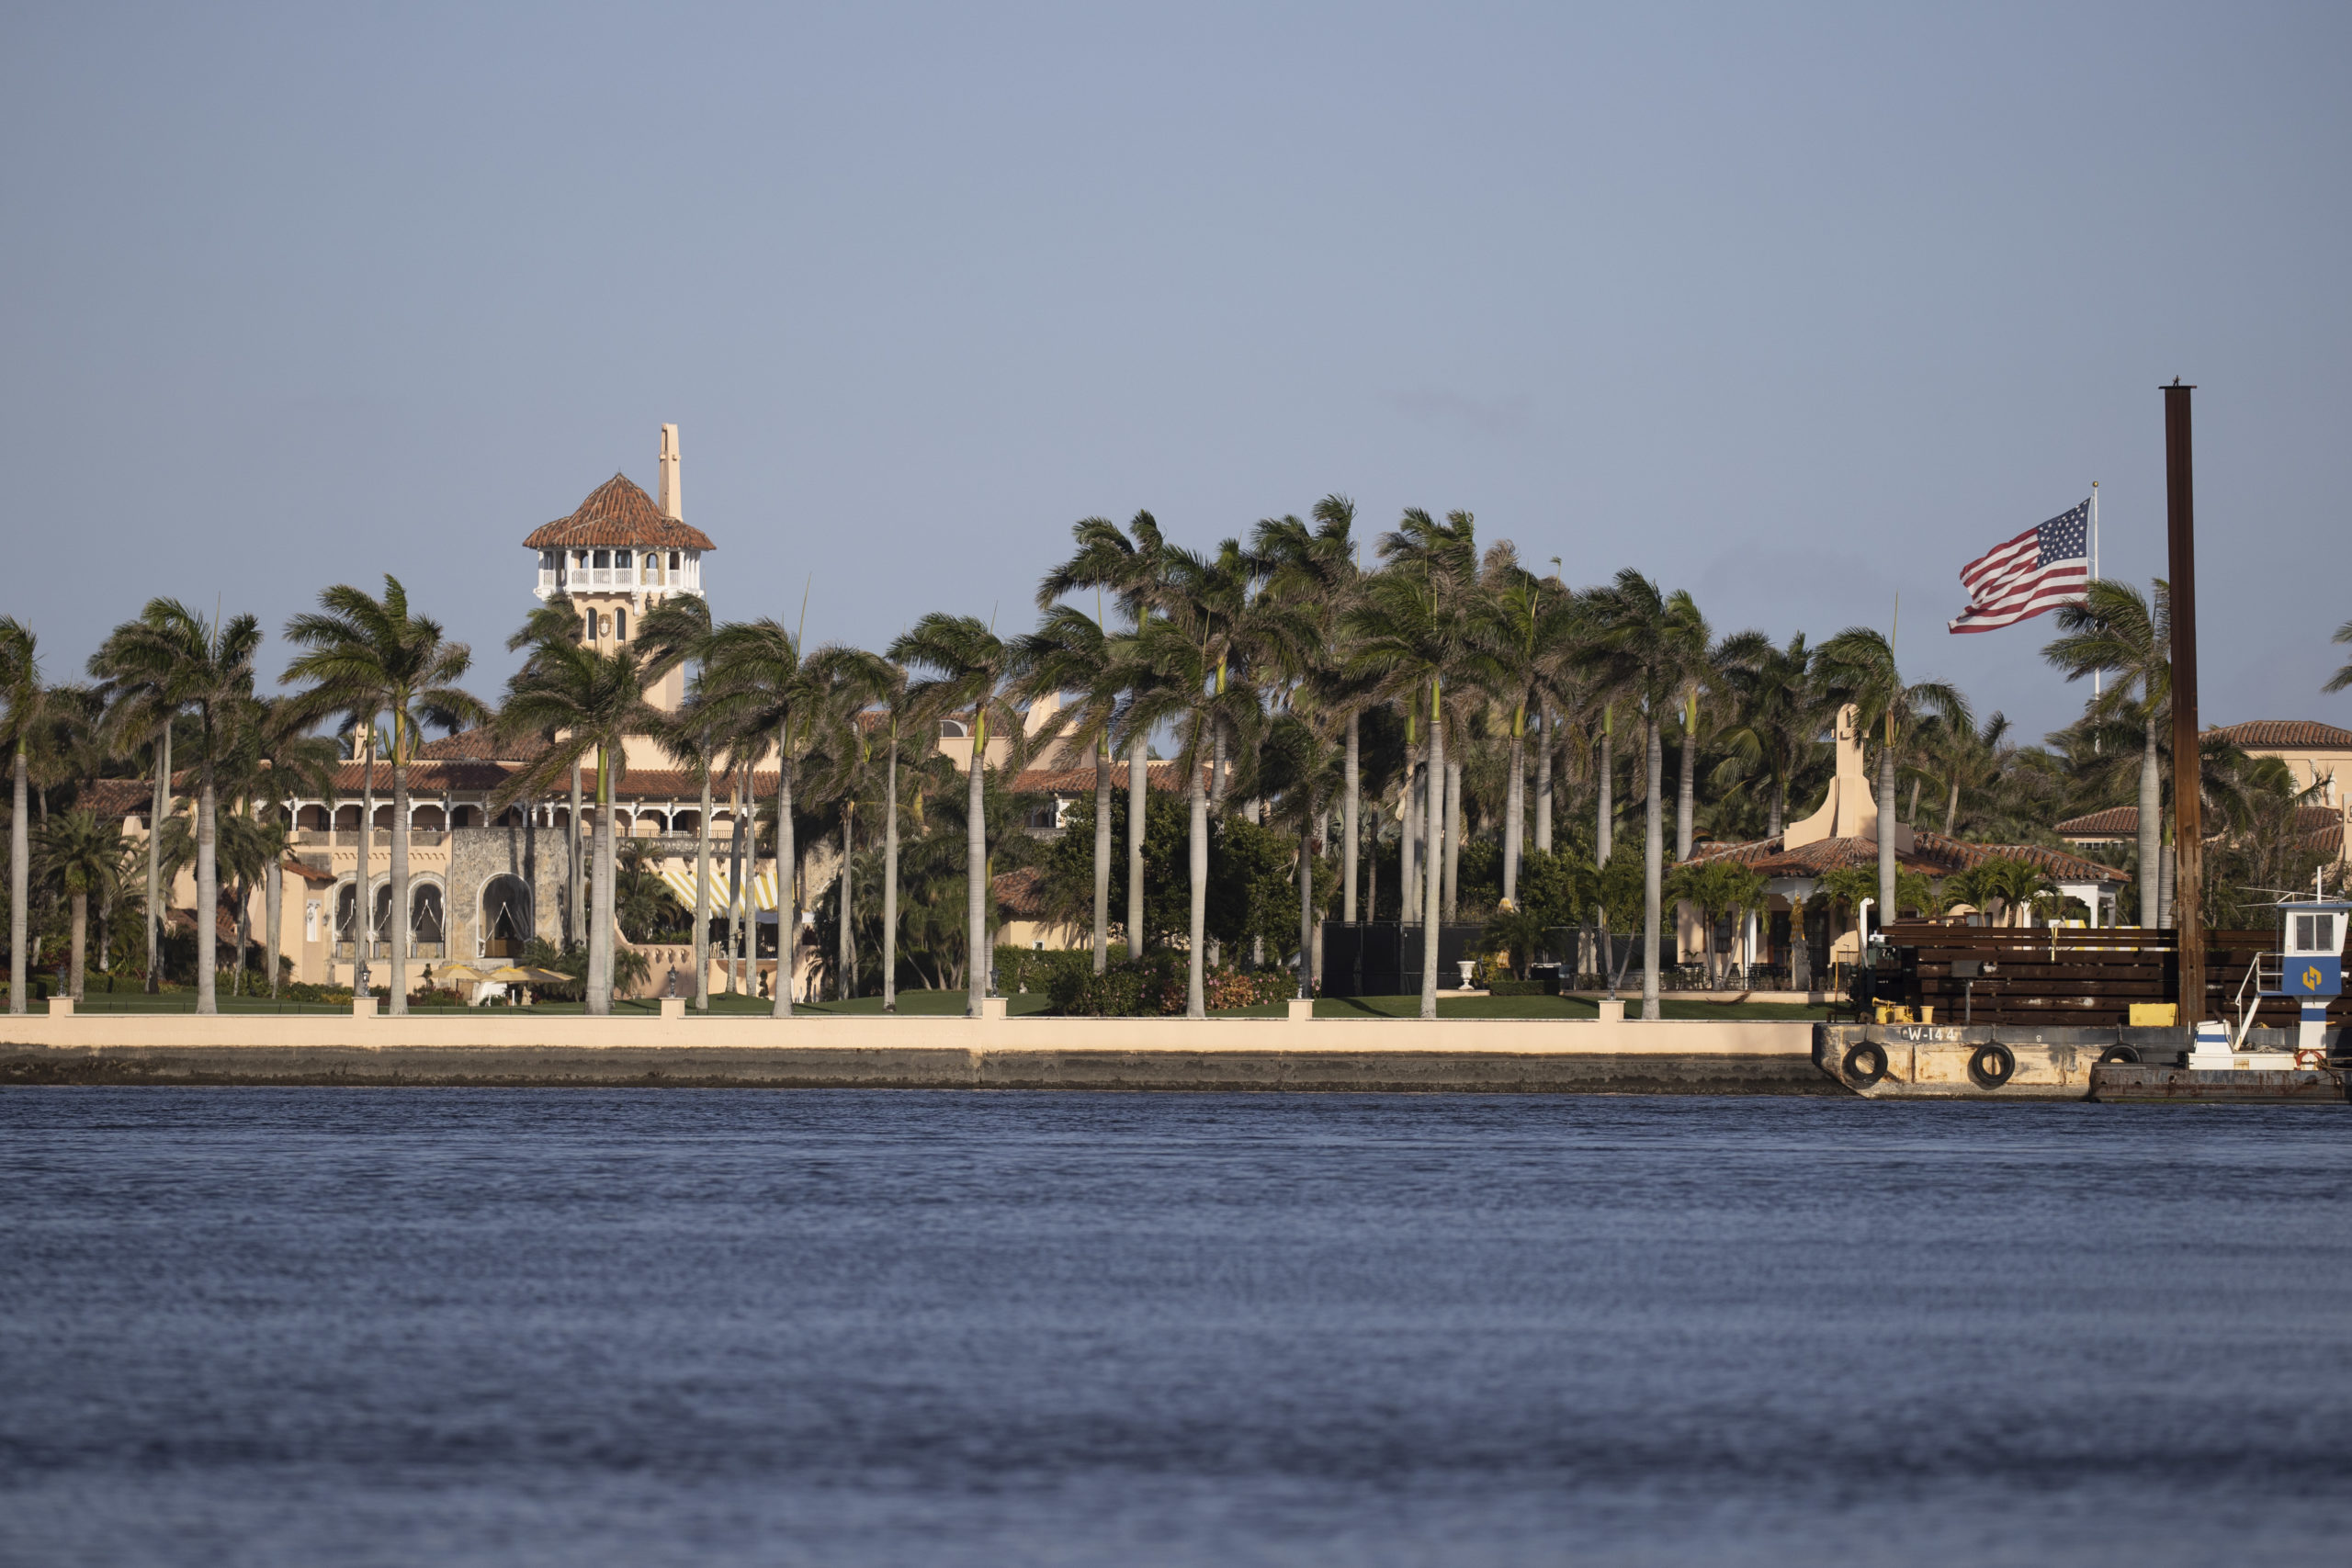 PALM BEACH, FLORIDA - FEBRUARY 13: Former President Donald Trump's Mar-a-Lago resort where he resides after leaving the White House on February 13, 2021 in Palm Beach, Florida. The Senate on Saturday acquitted Donald Trump of inciting the attack on the U.S. Capitol on January 6th in Washington, DC. (Photo by Joe Raedle/Getty Images)